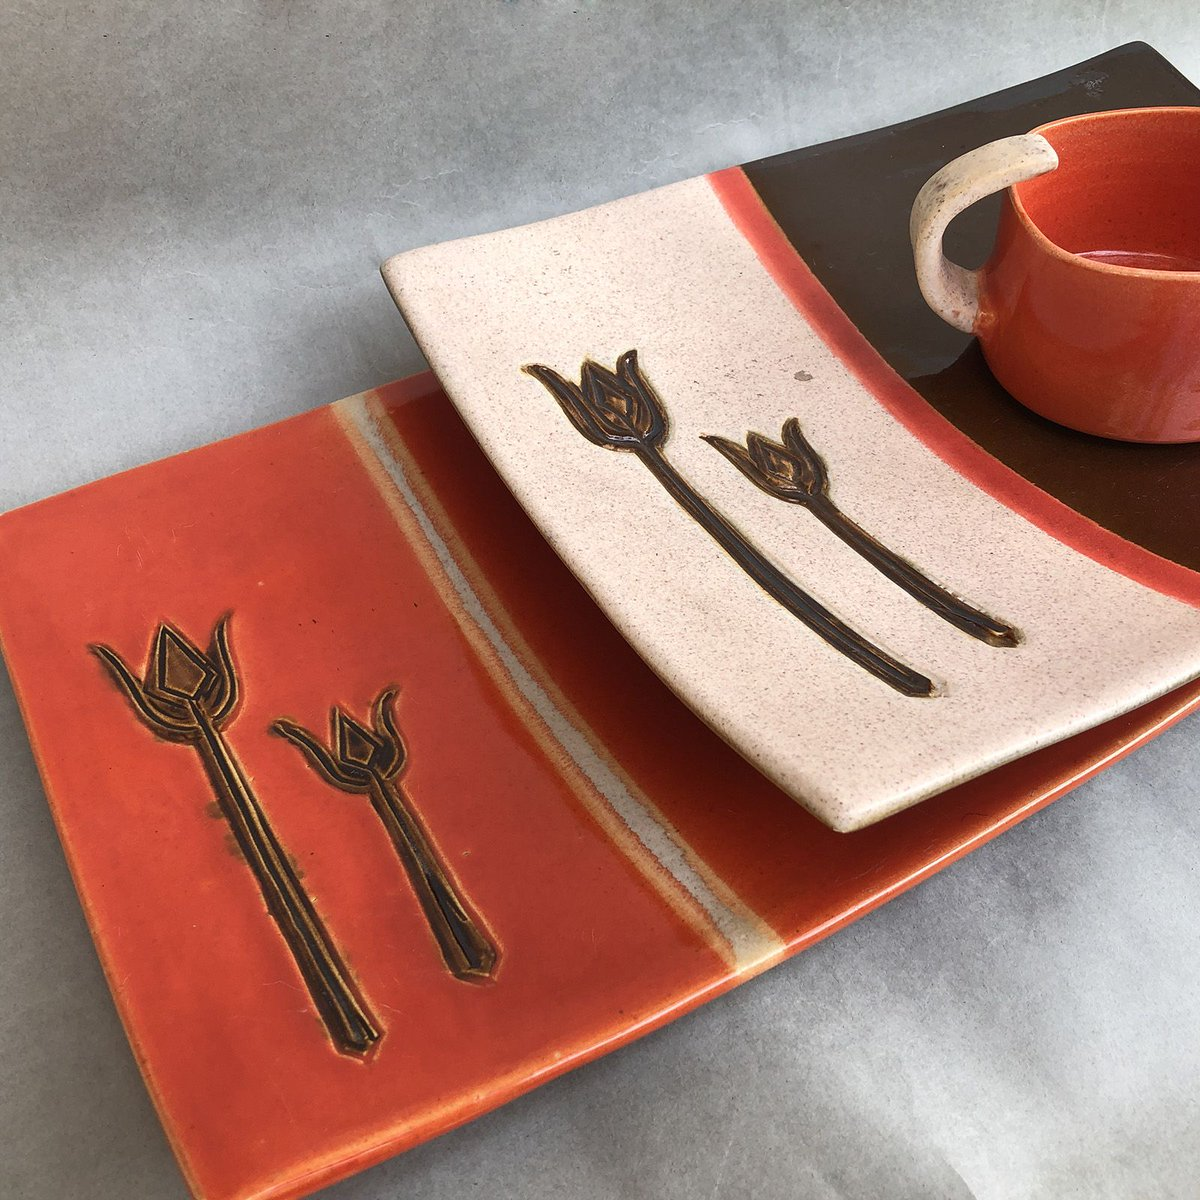 Rectangle Trishul Plate & Turned Handle Cup.. Studio Pottery By Anupama Jalan.. Here for Rs 1,805.  https://buff.ly/2X9rDJO #pottery #handcrafted #handmade #earthenware #decor #homedecor #instahome #homestyle #artisan #handcrafted #shopsmall #craft #madewithlove #handmadewithlove